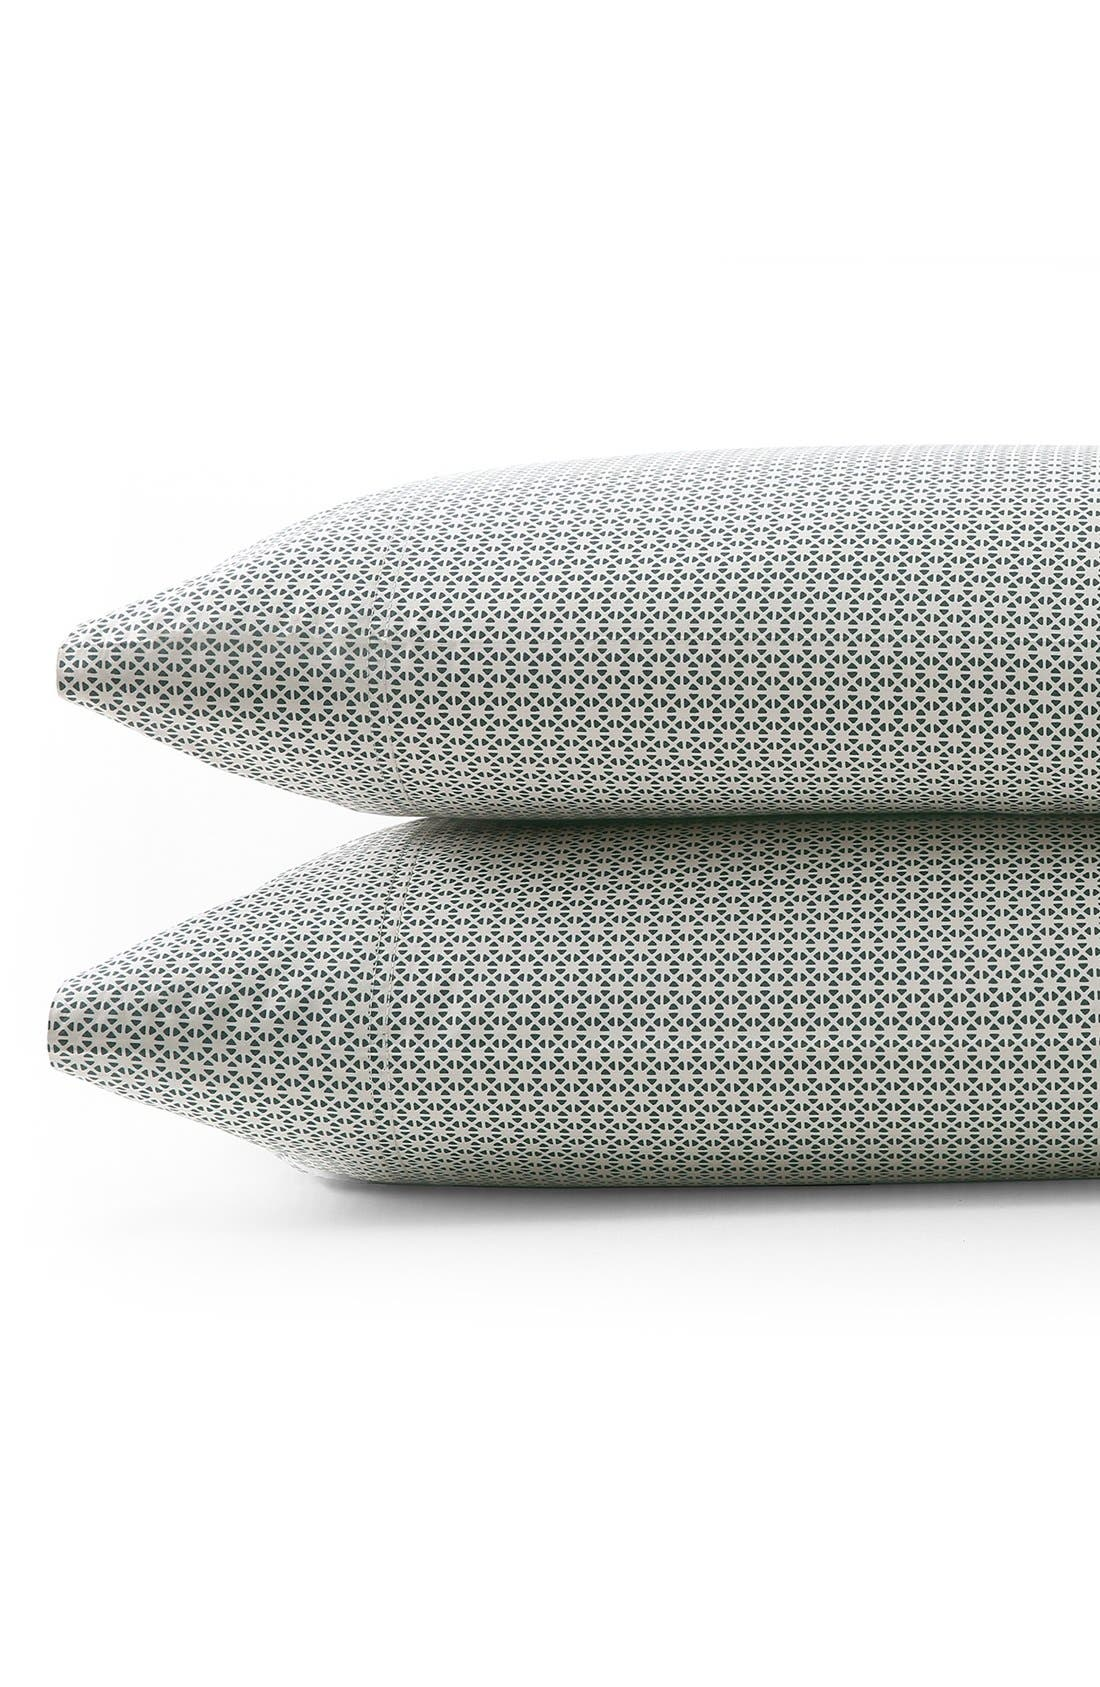 Alternate Image 1 Selected - DwellStudio 'Fez' 300 Thread Count Pillowcases